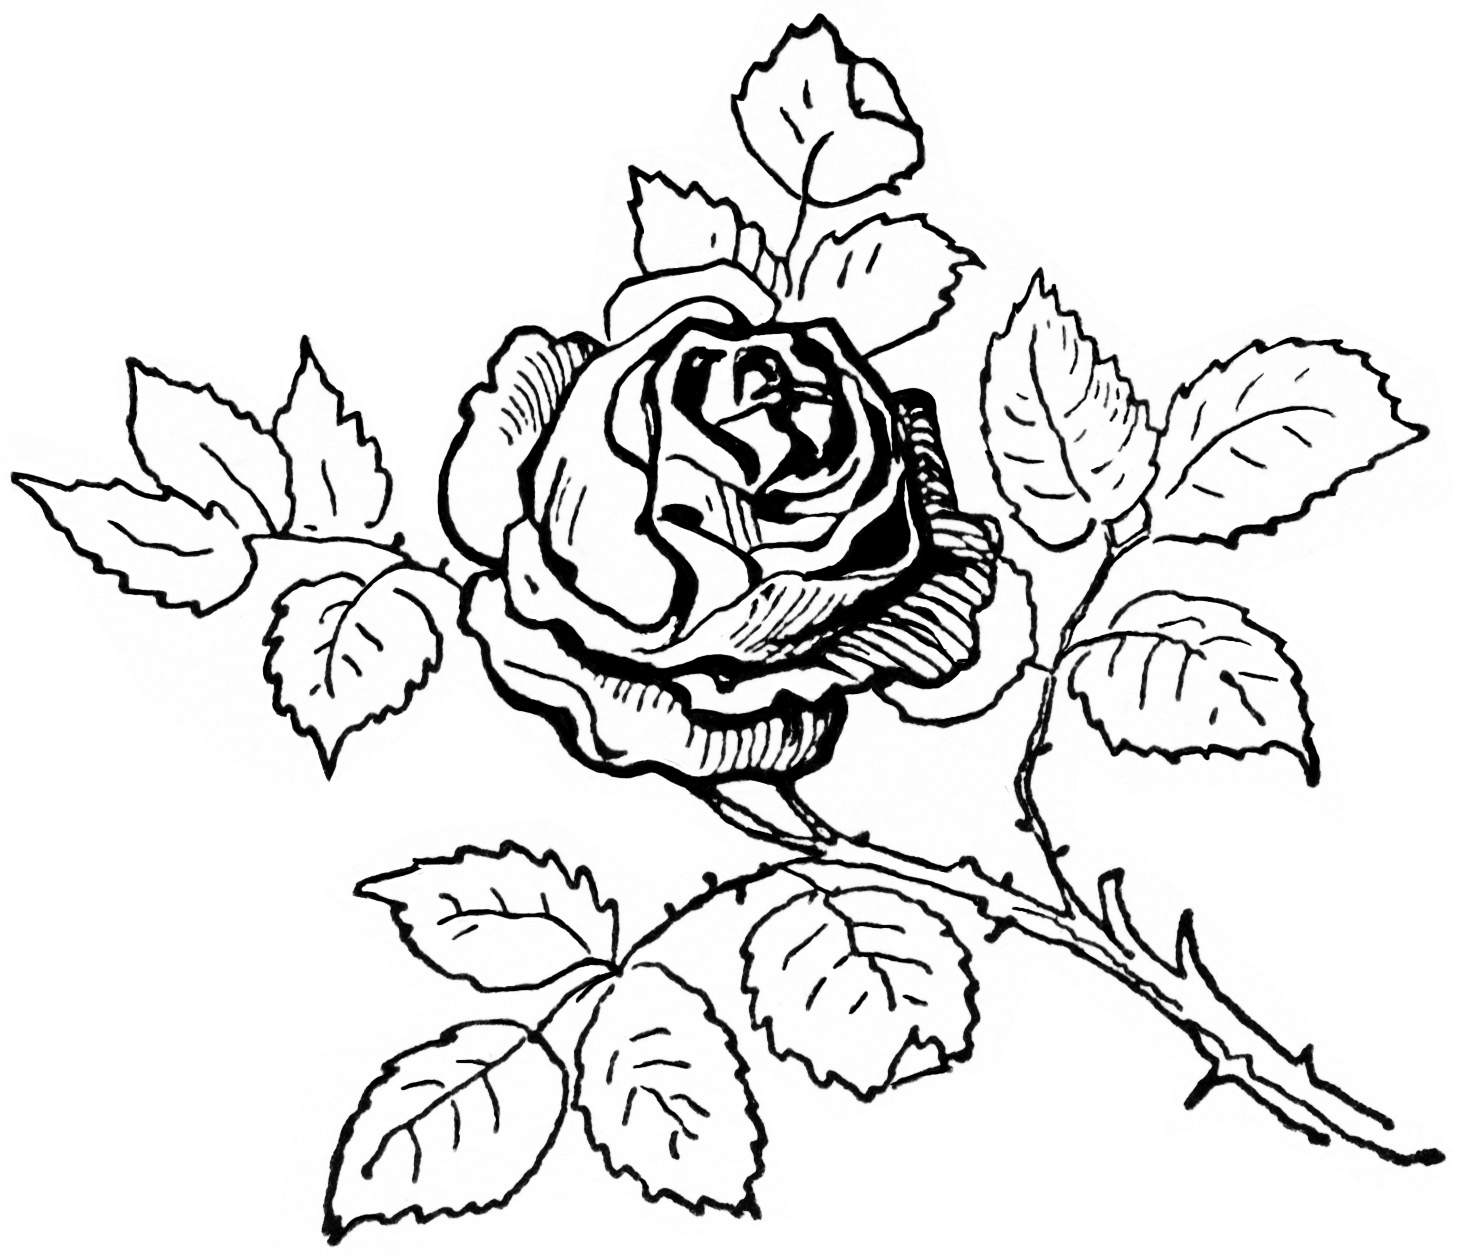 Old Design Shop ~ Free Digital Image: Vi-Old Design Shop ~ free digital image: vintage black and white clipart rose | Old Design Shop Freebies | Pinterest | Clip art, Flower and Design shop-16